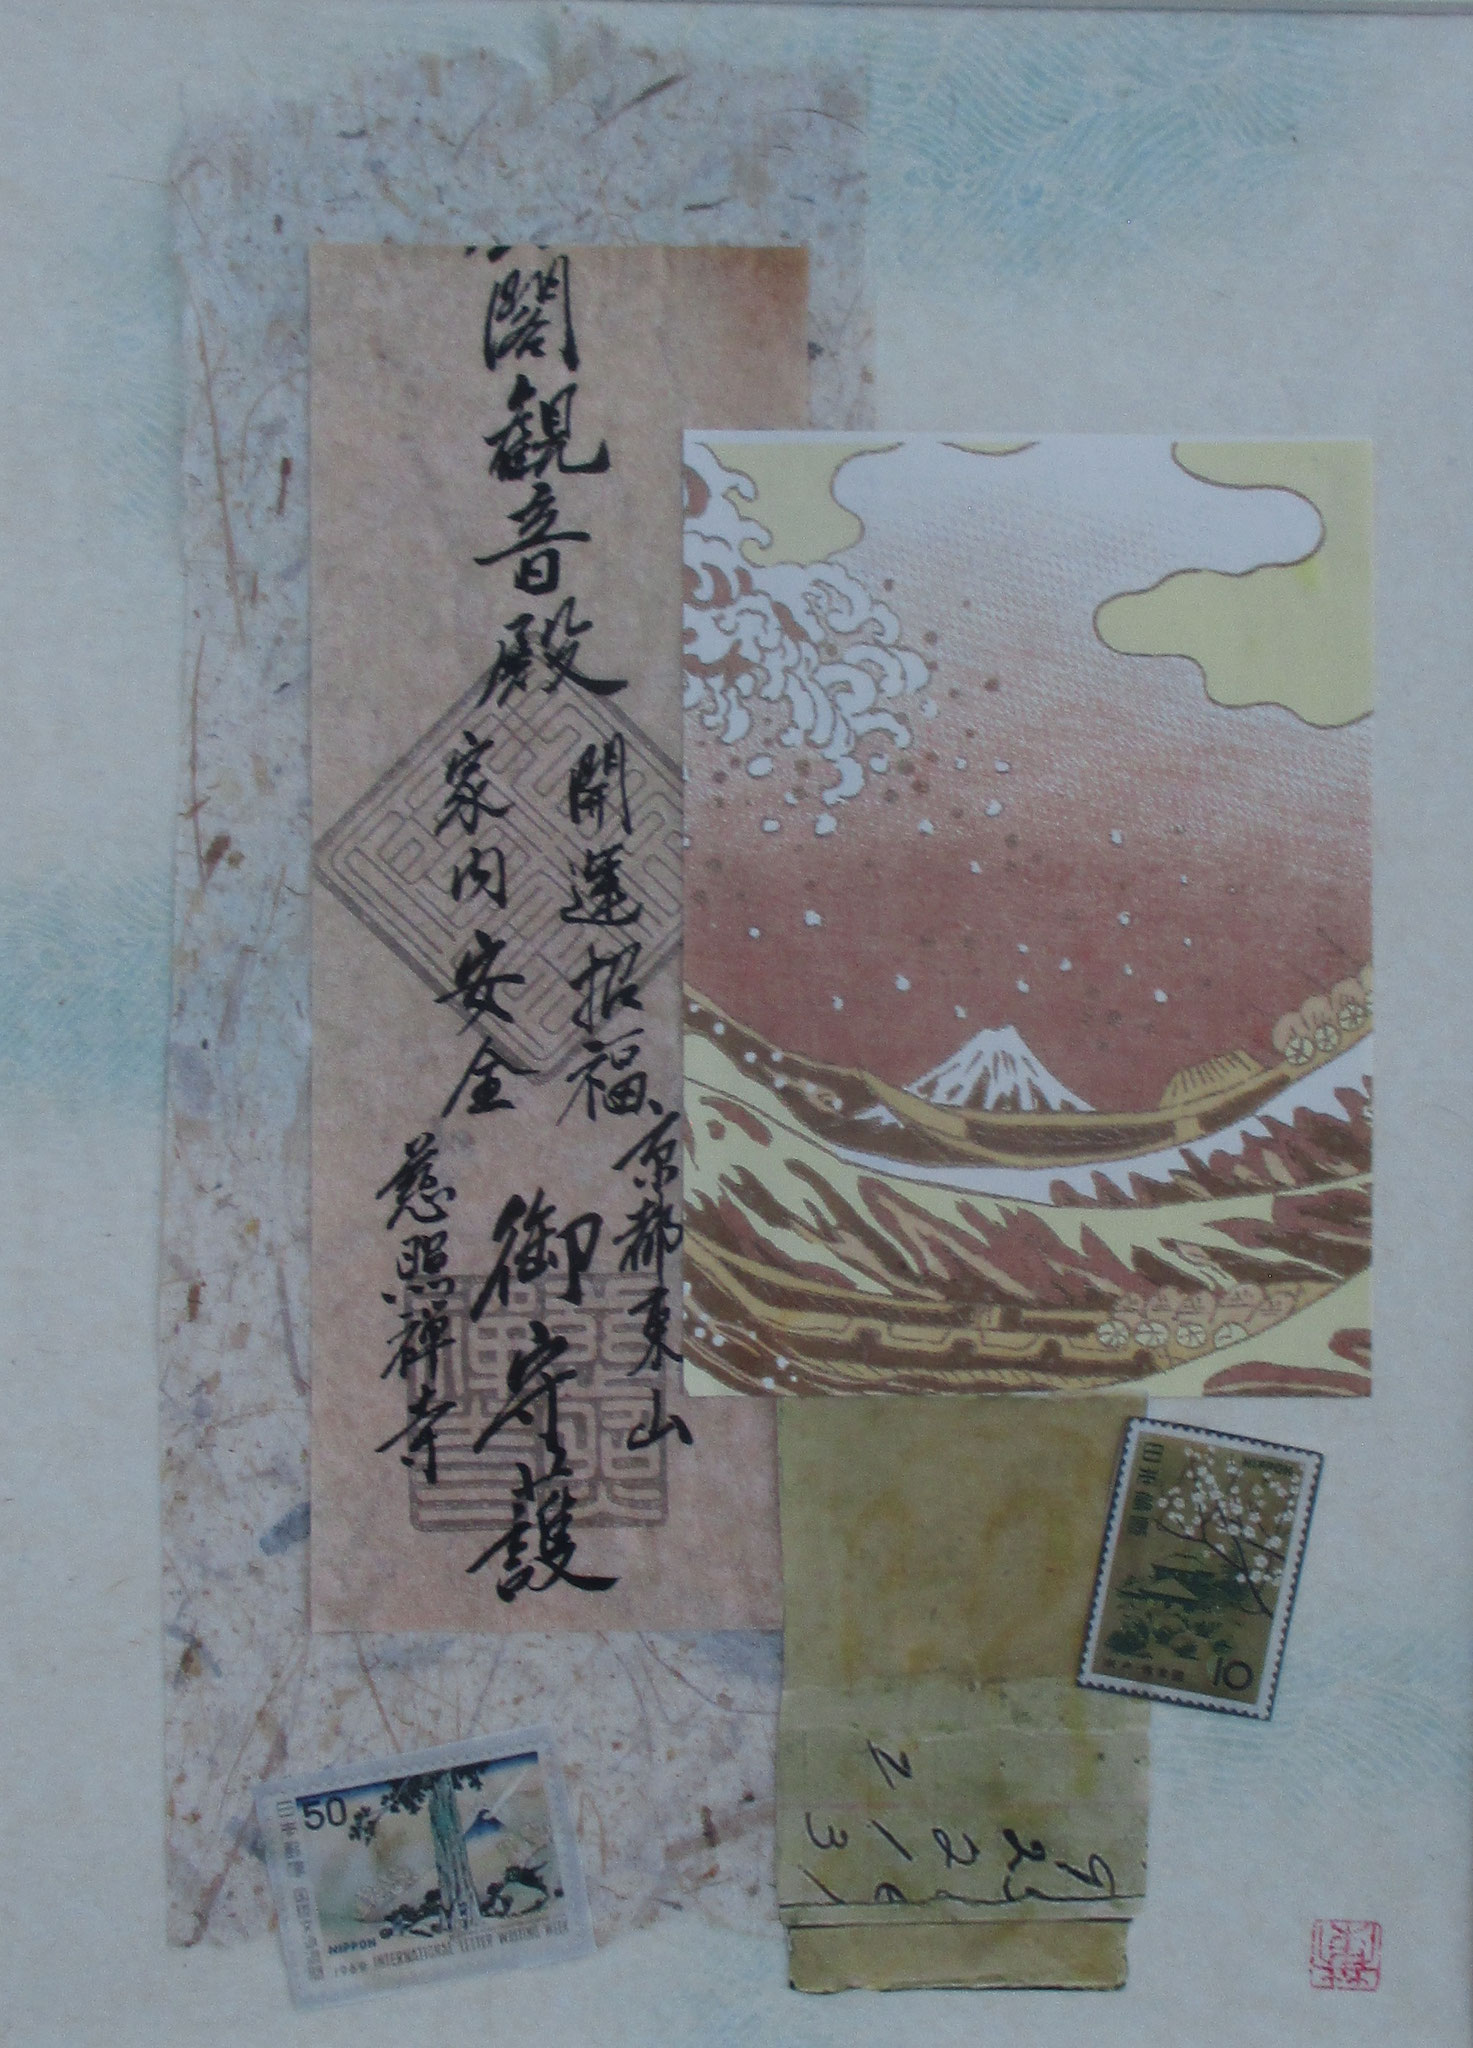 Mindfulness 心配 Shinpai Collage, Washi Paper, ink 12 x 16 matted